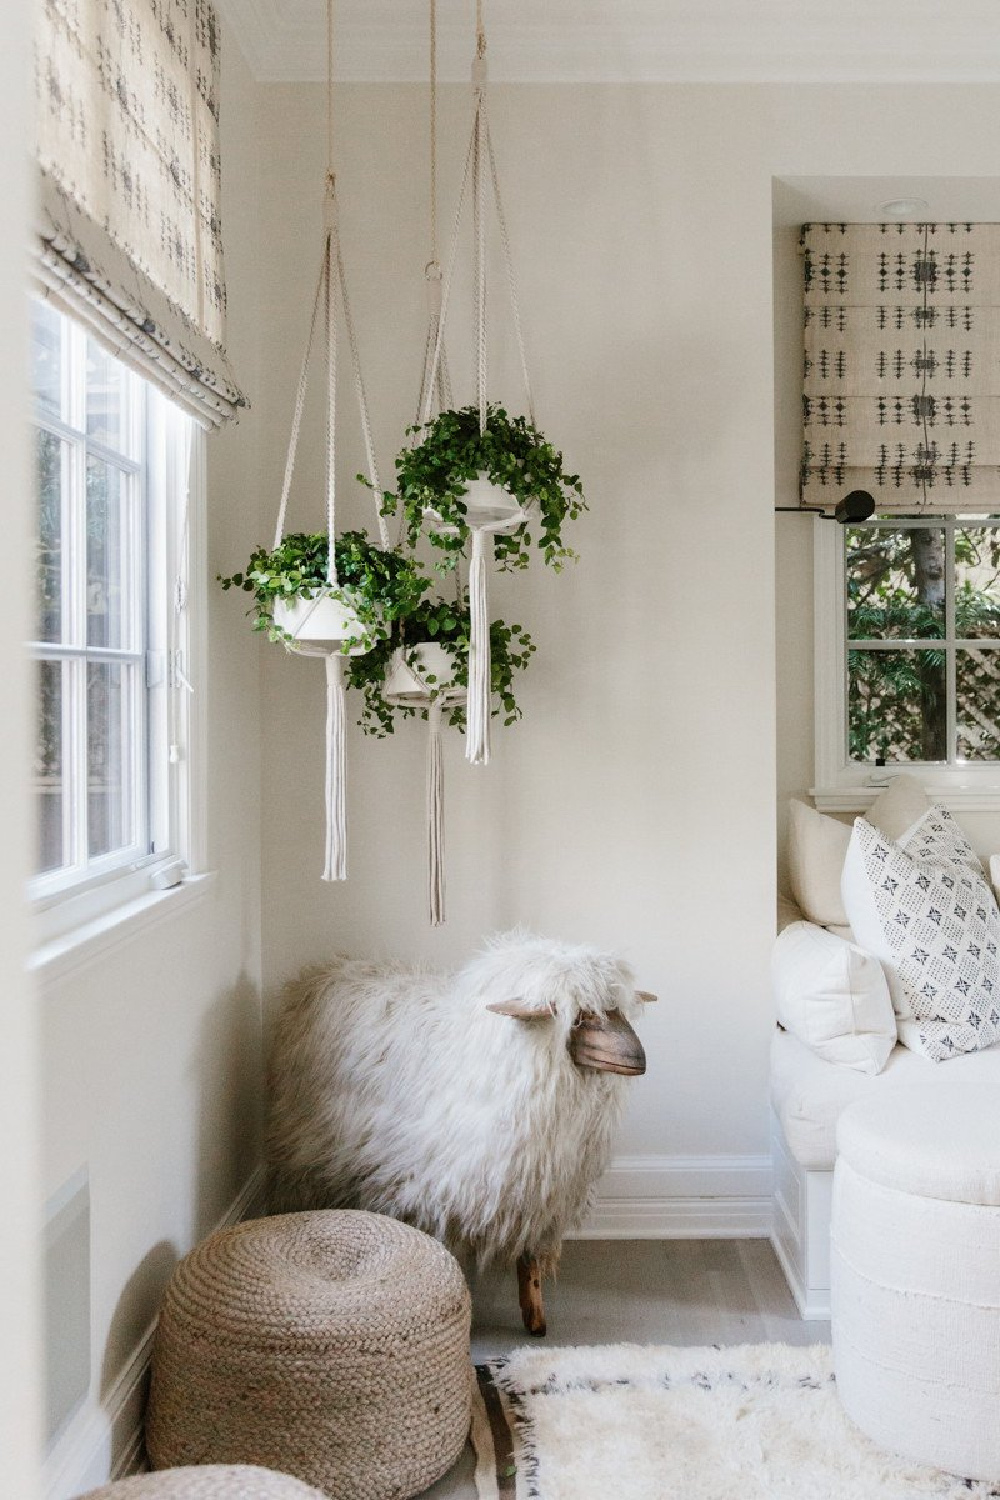 California modern farmhouse decor with hanging plants in Erin Fetherston home. Come explore more California modern farmhouse design inspiration!